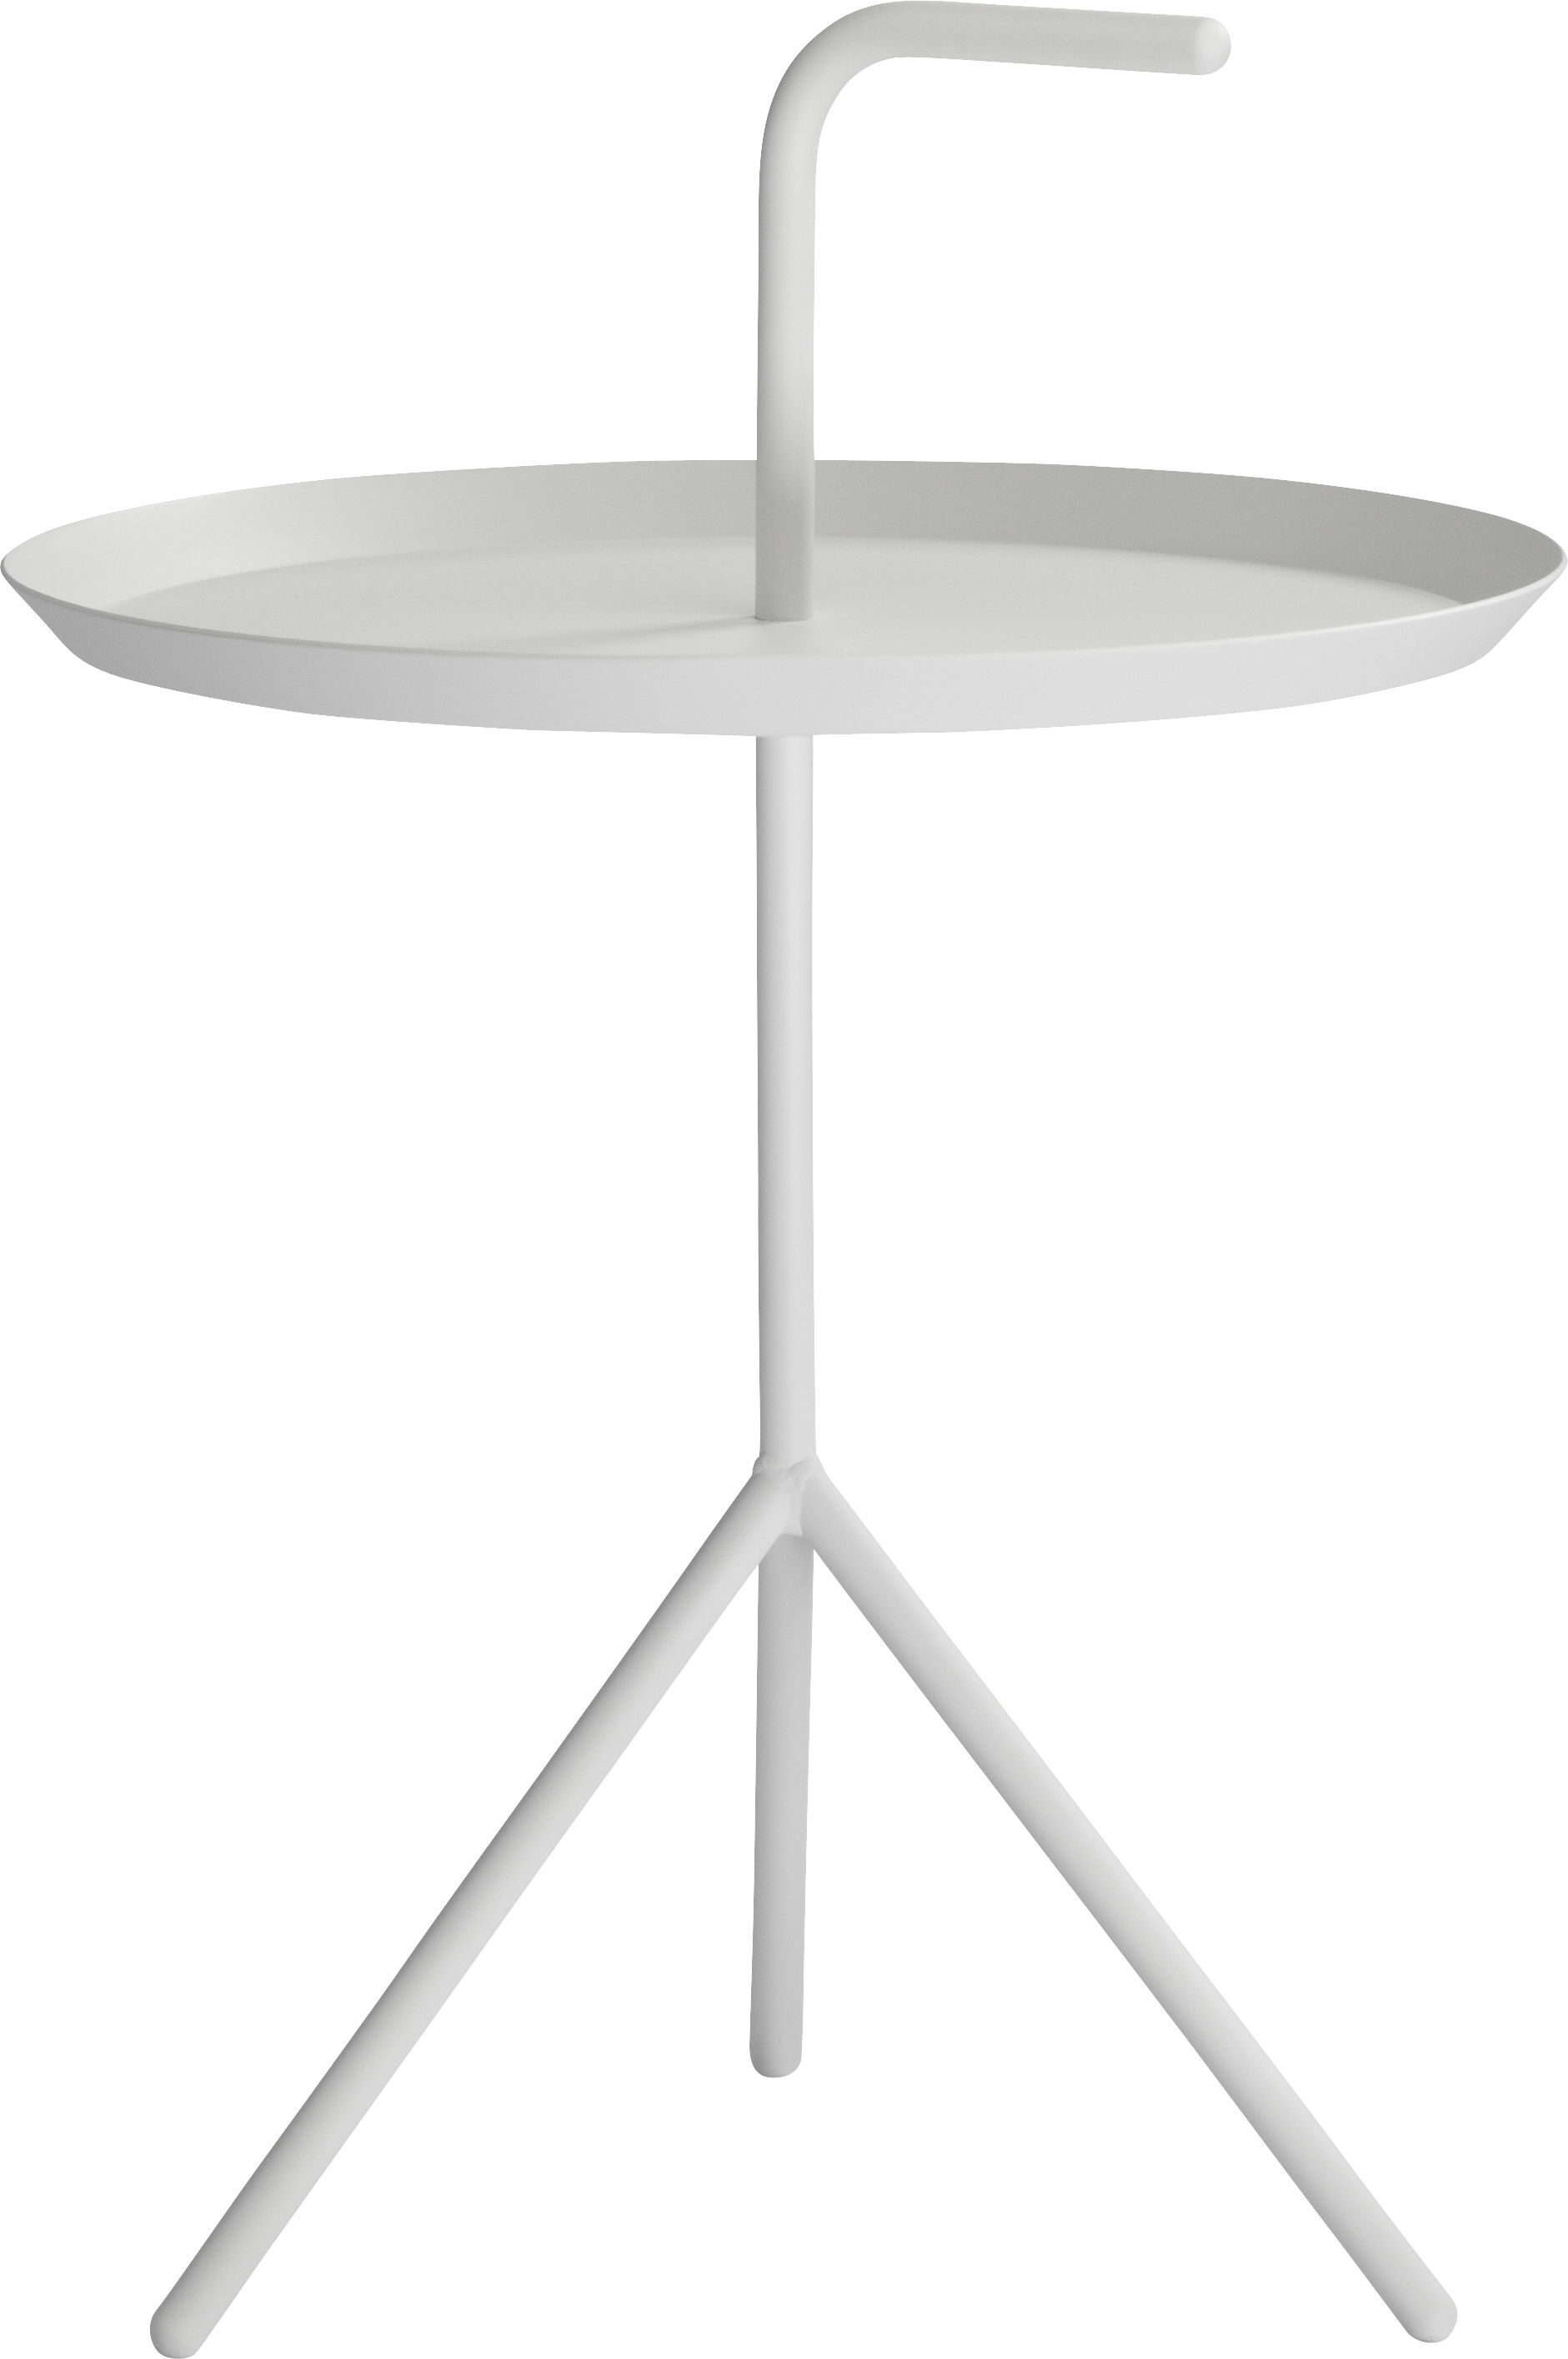 Furniture - Coffee Tables - Don't leave Me XL Coffee table by Hay - White - Lacquered steel